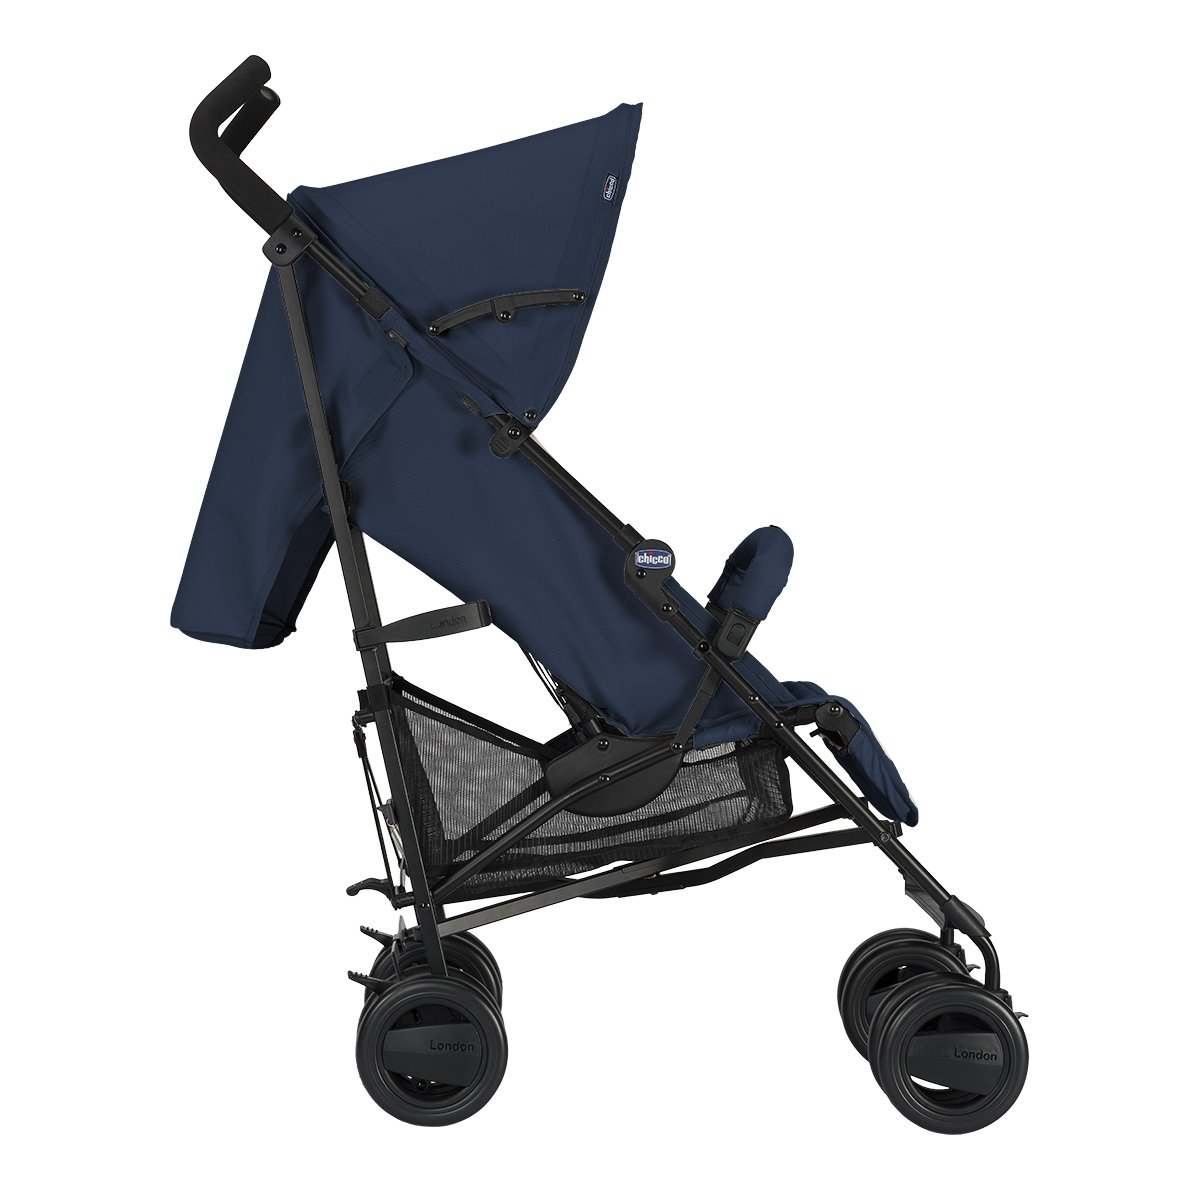 Chicco London - Silla de paseo, 7.2 kg, compacta y manejable, color azul